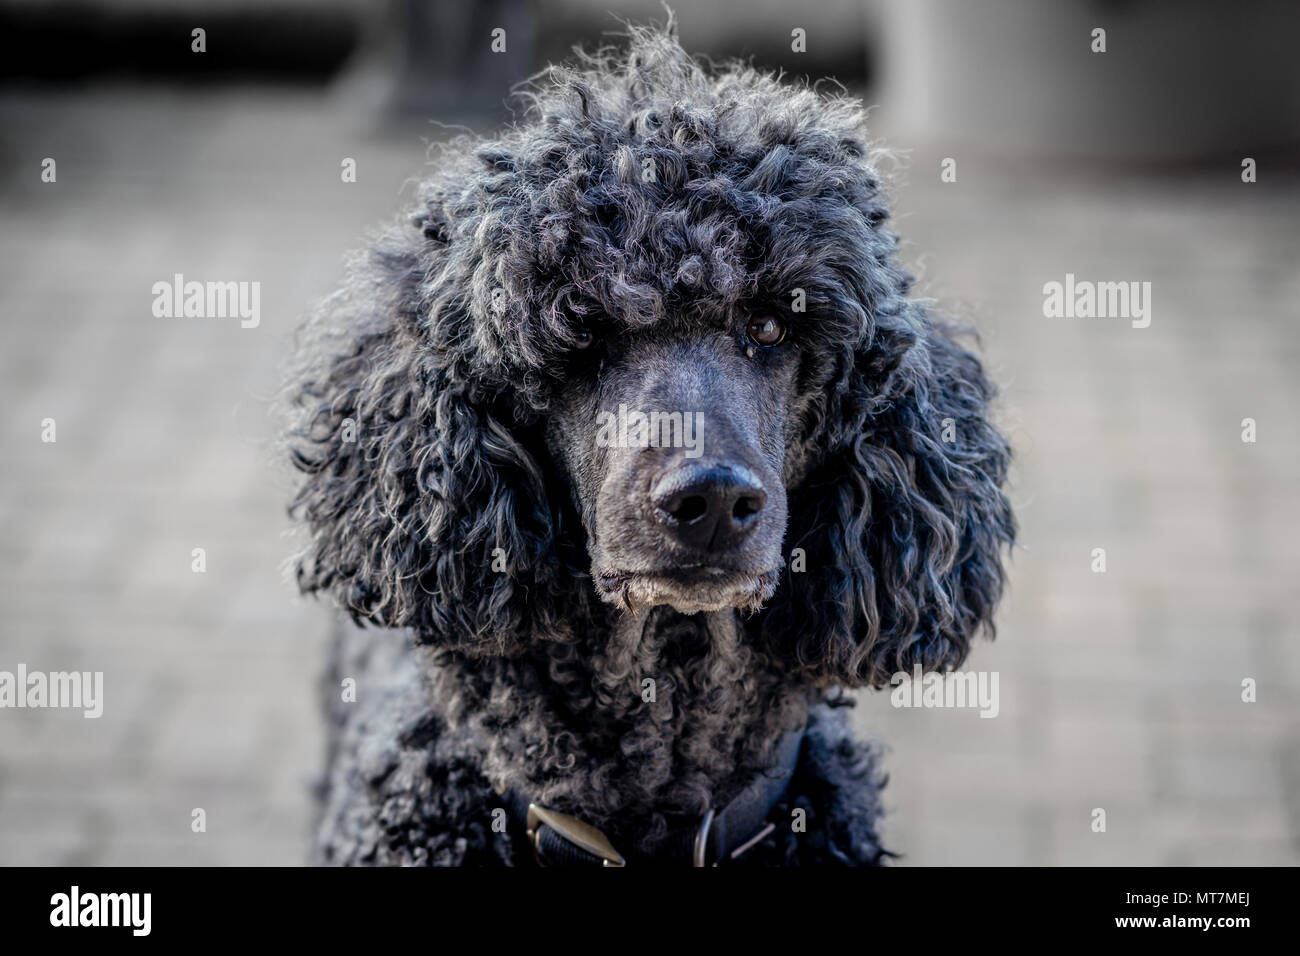 Backlit large collared black standard poodle dog with natural coat staring directly to camera on patio - headshot portrait - Stock Image